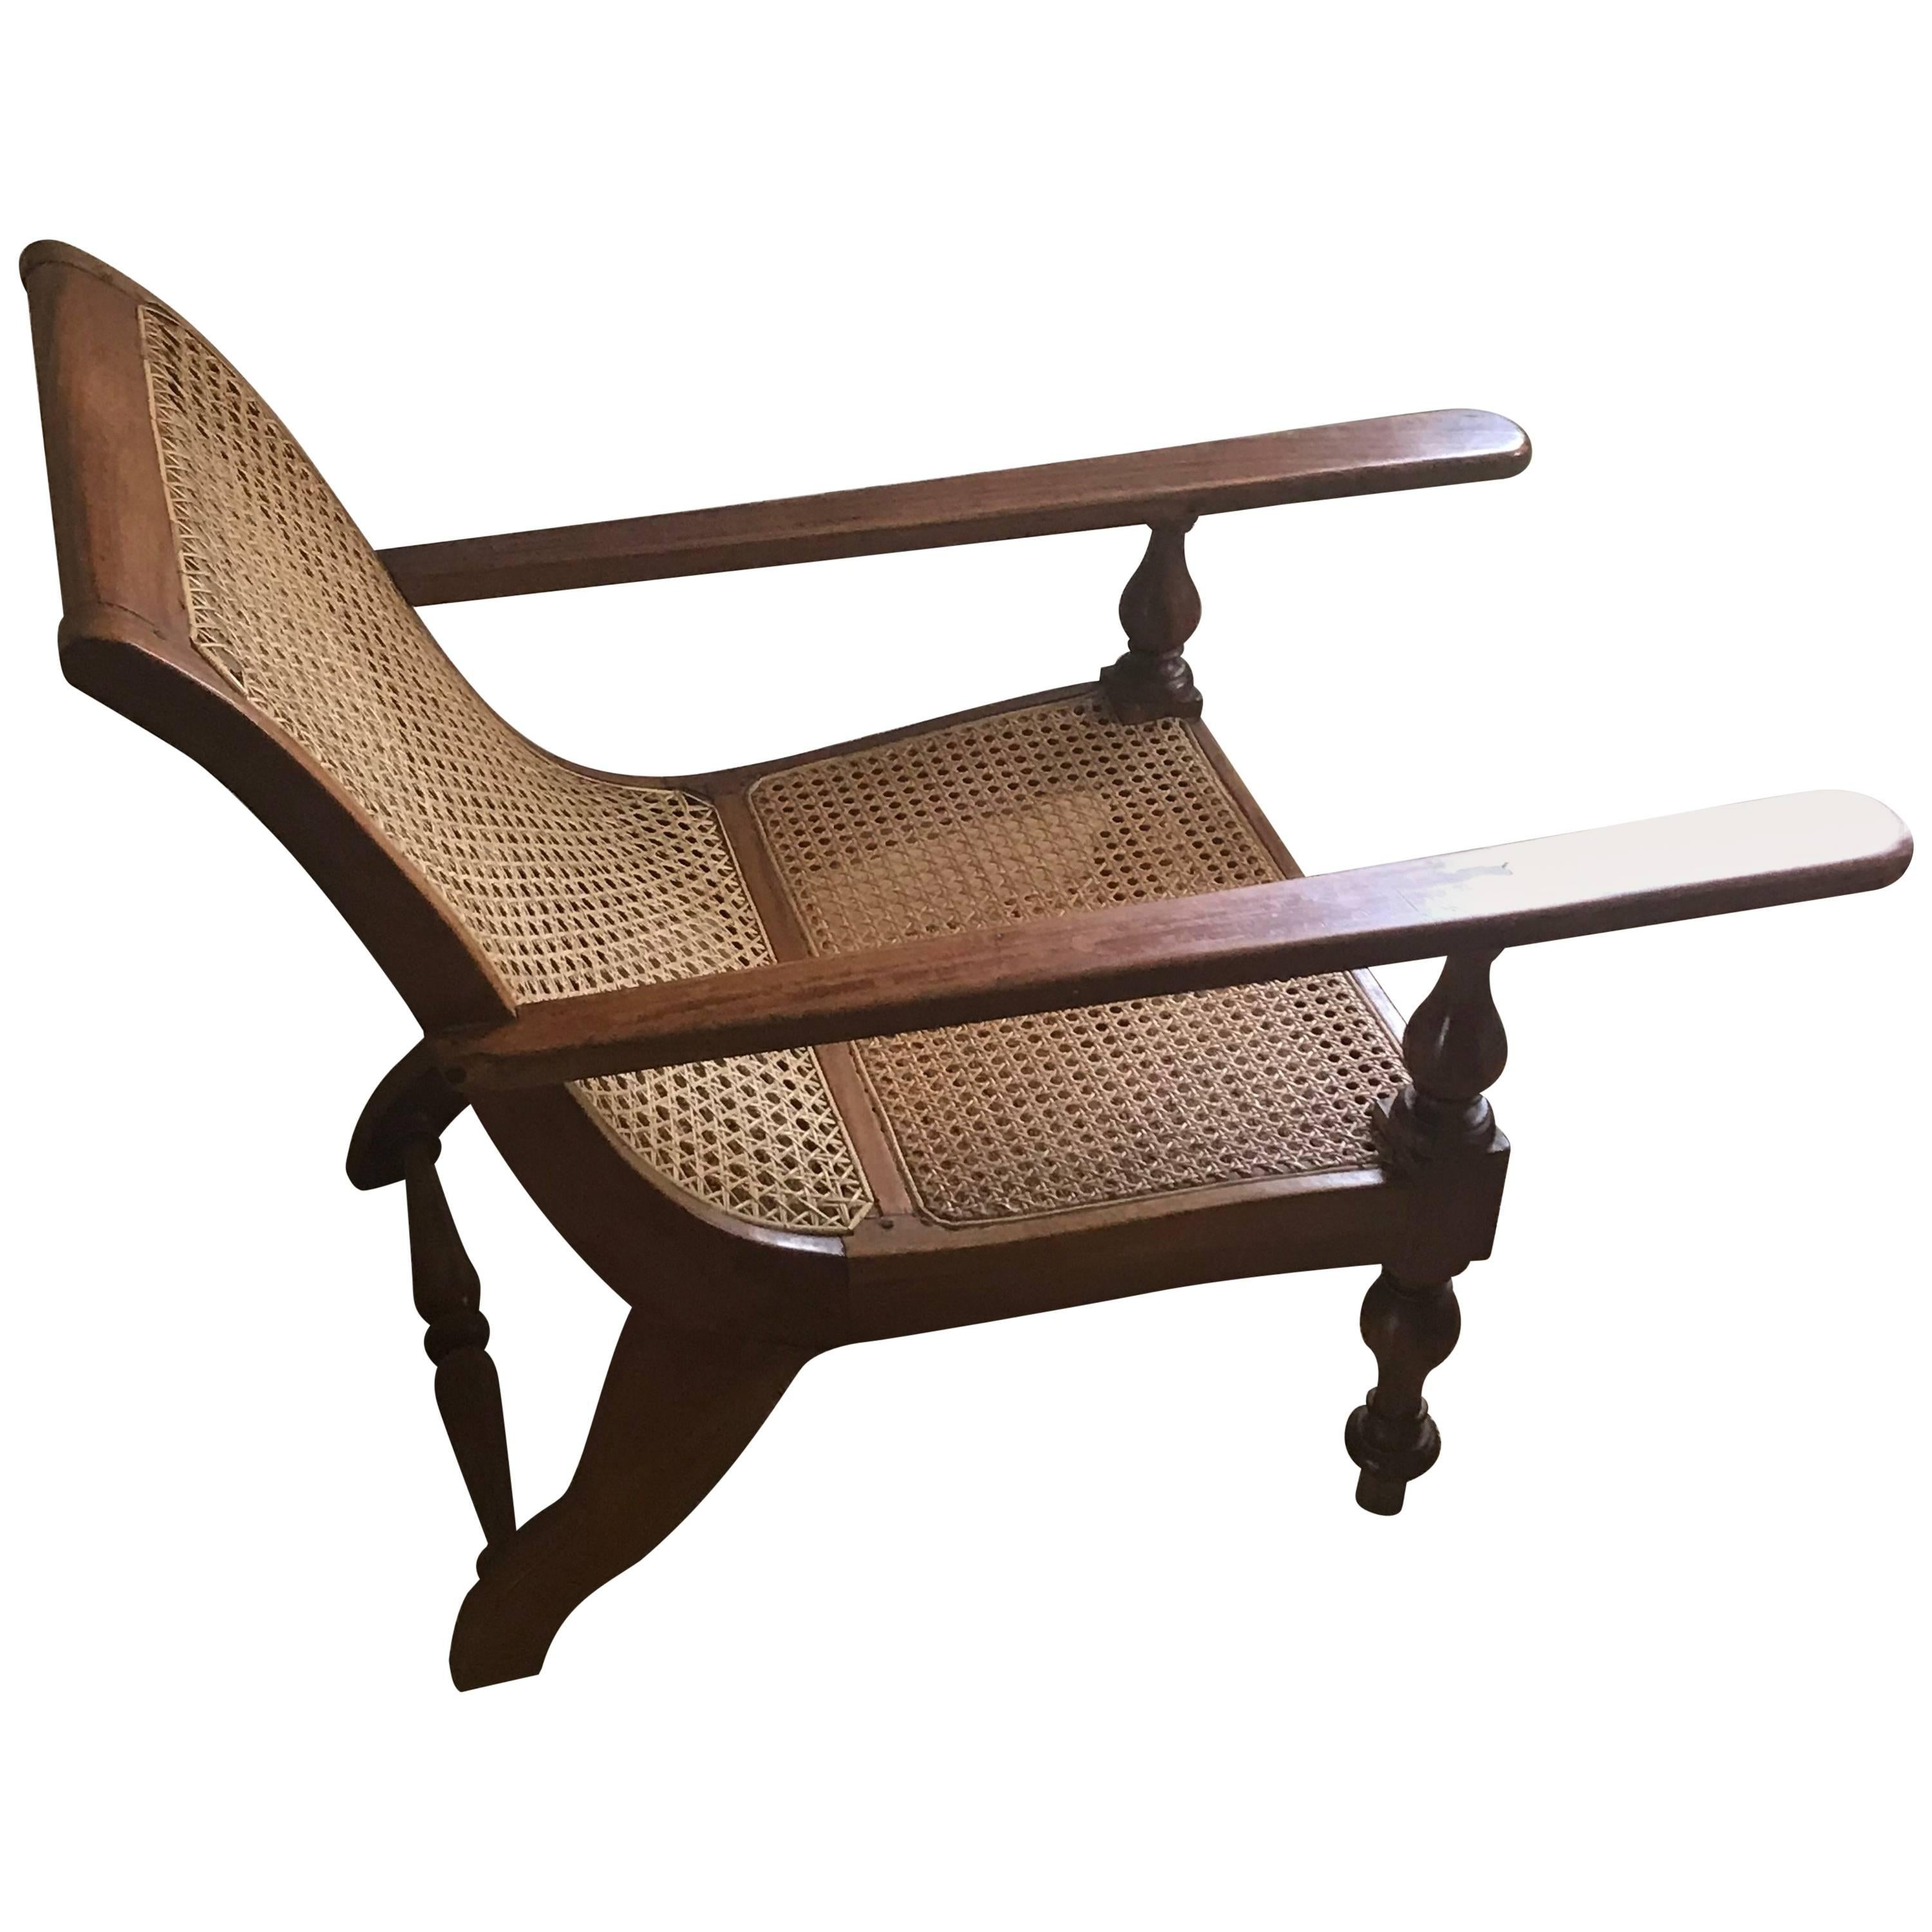 British Colonial, Ceylonese, Satinwood Caned Long Arm Baby Planters Chair